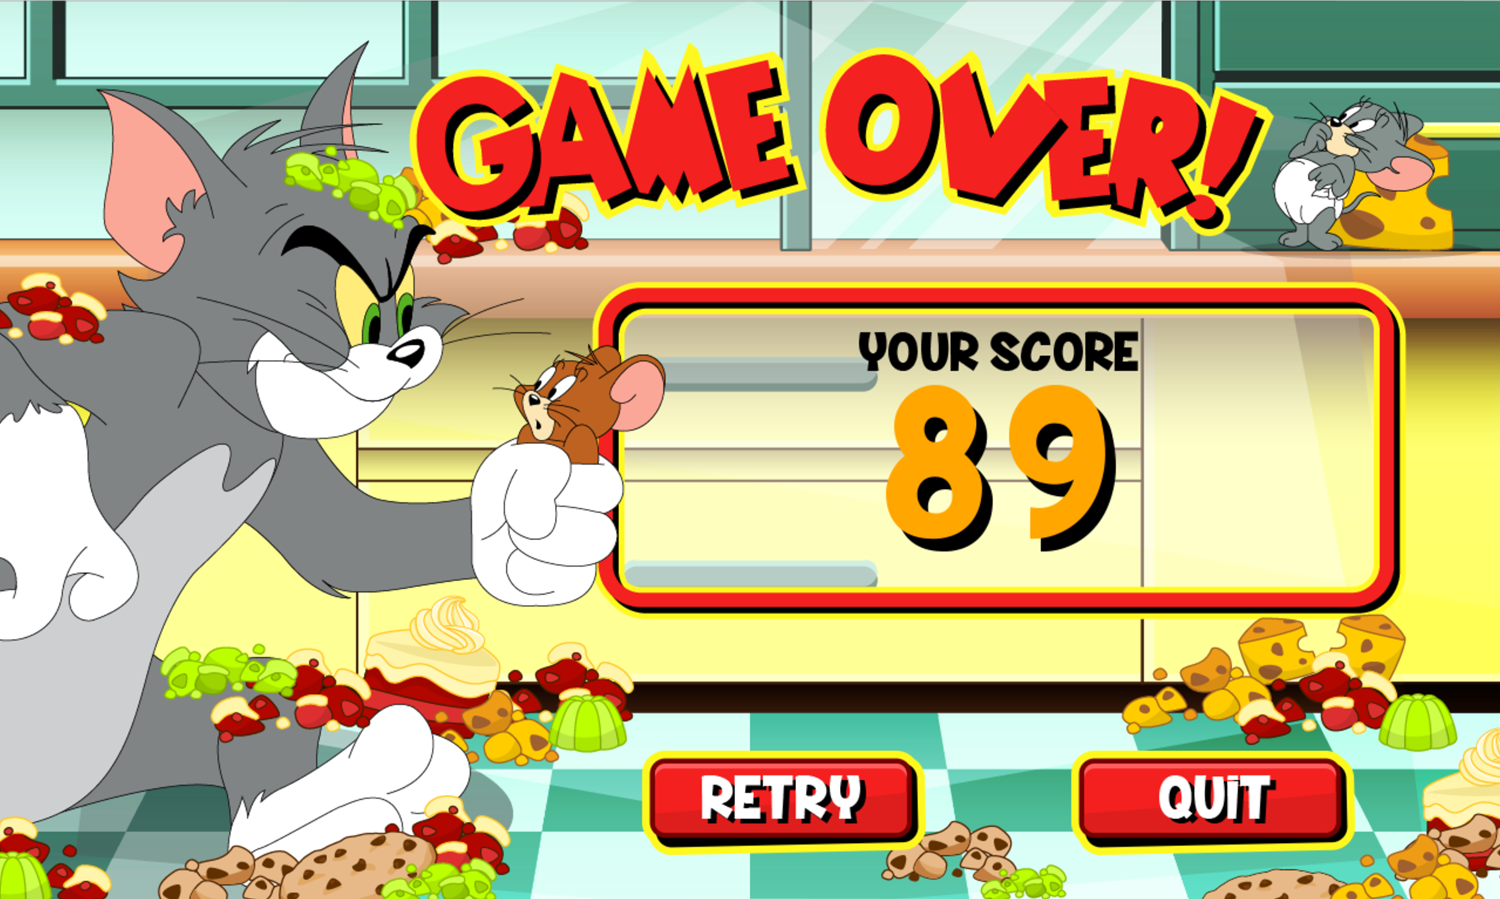 Tom and Jerry Bandit Munchers Game Over Screenshot.